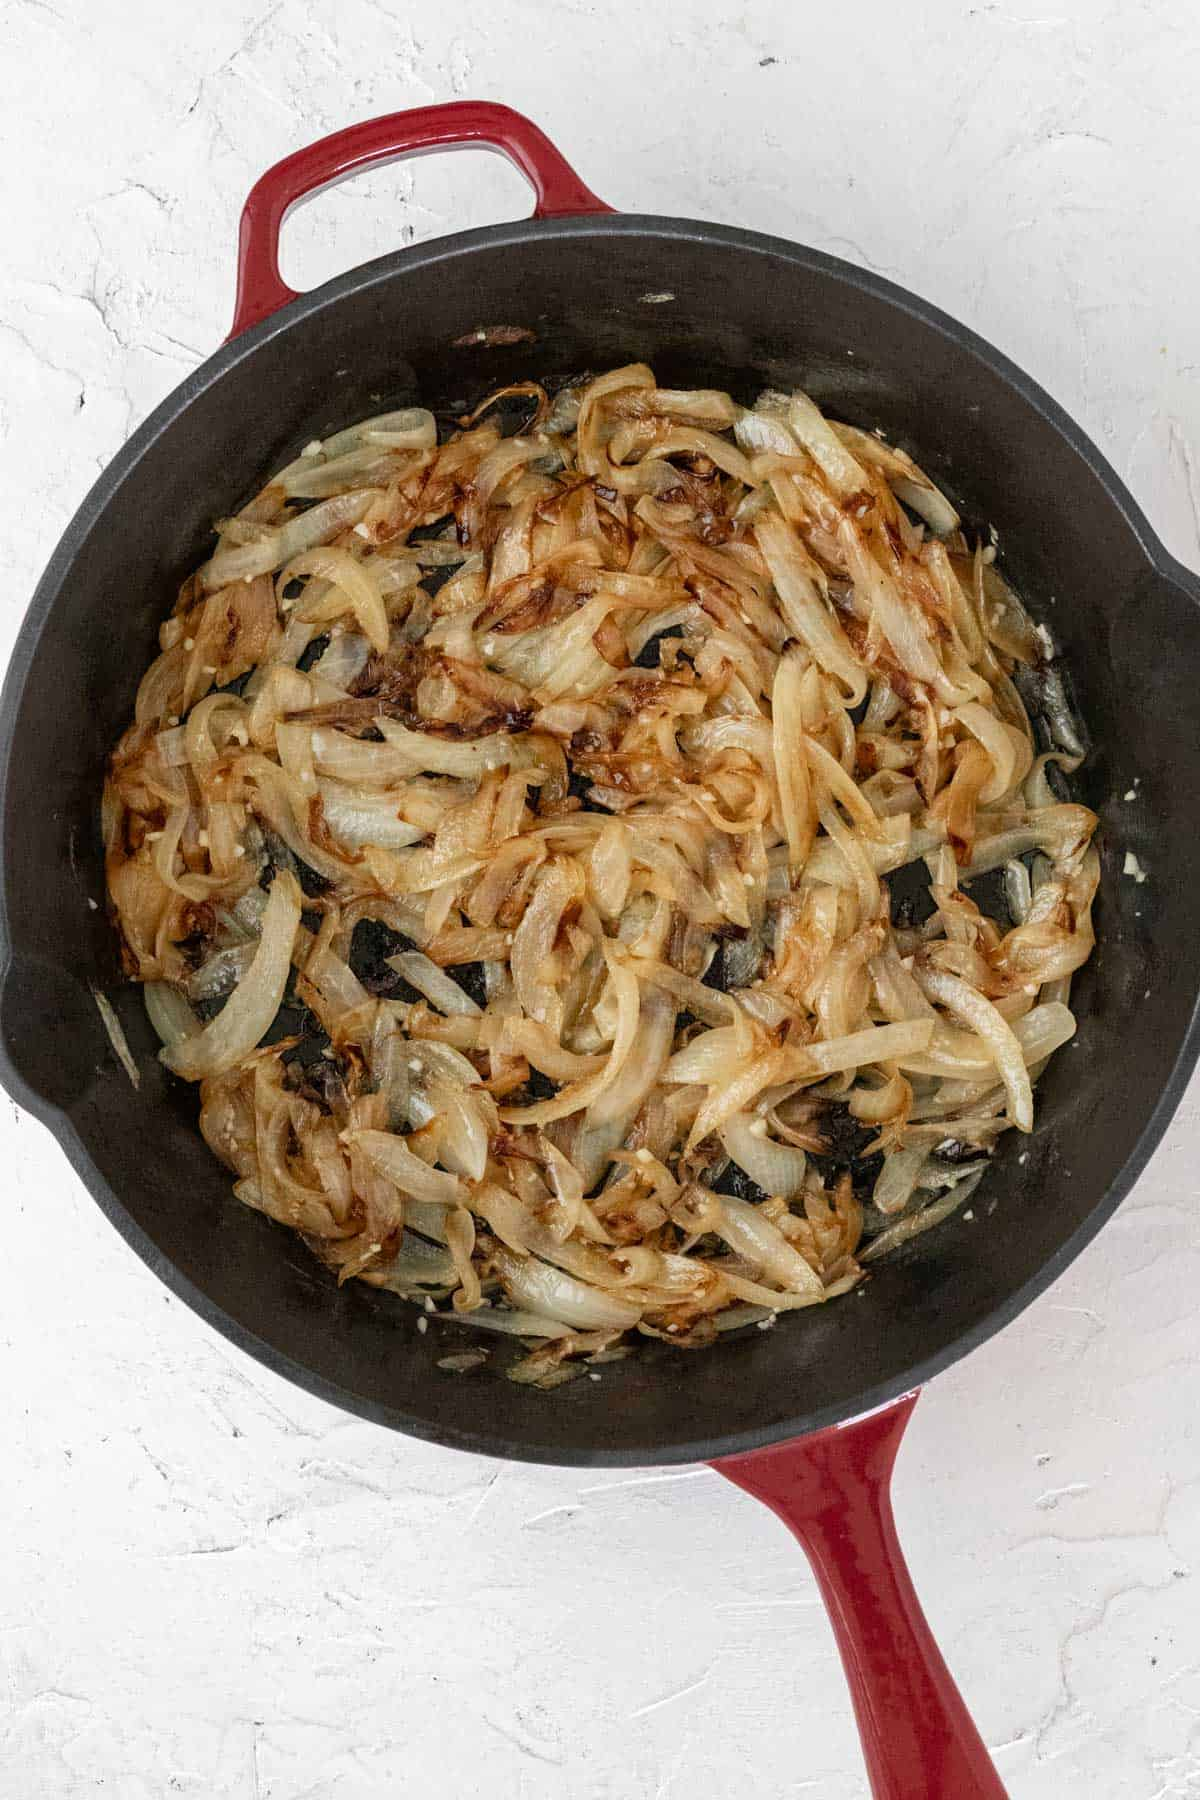 Caramelized onions in a cast iron skillet.